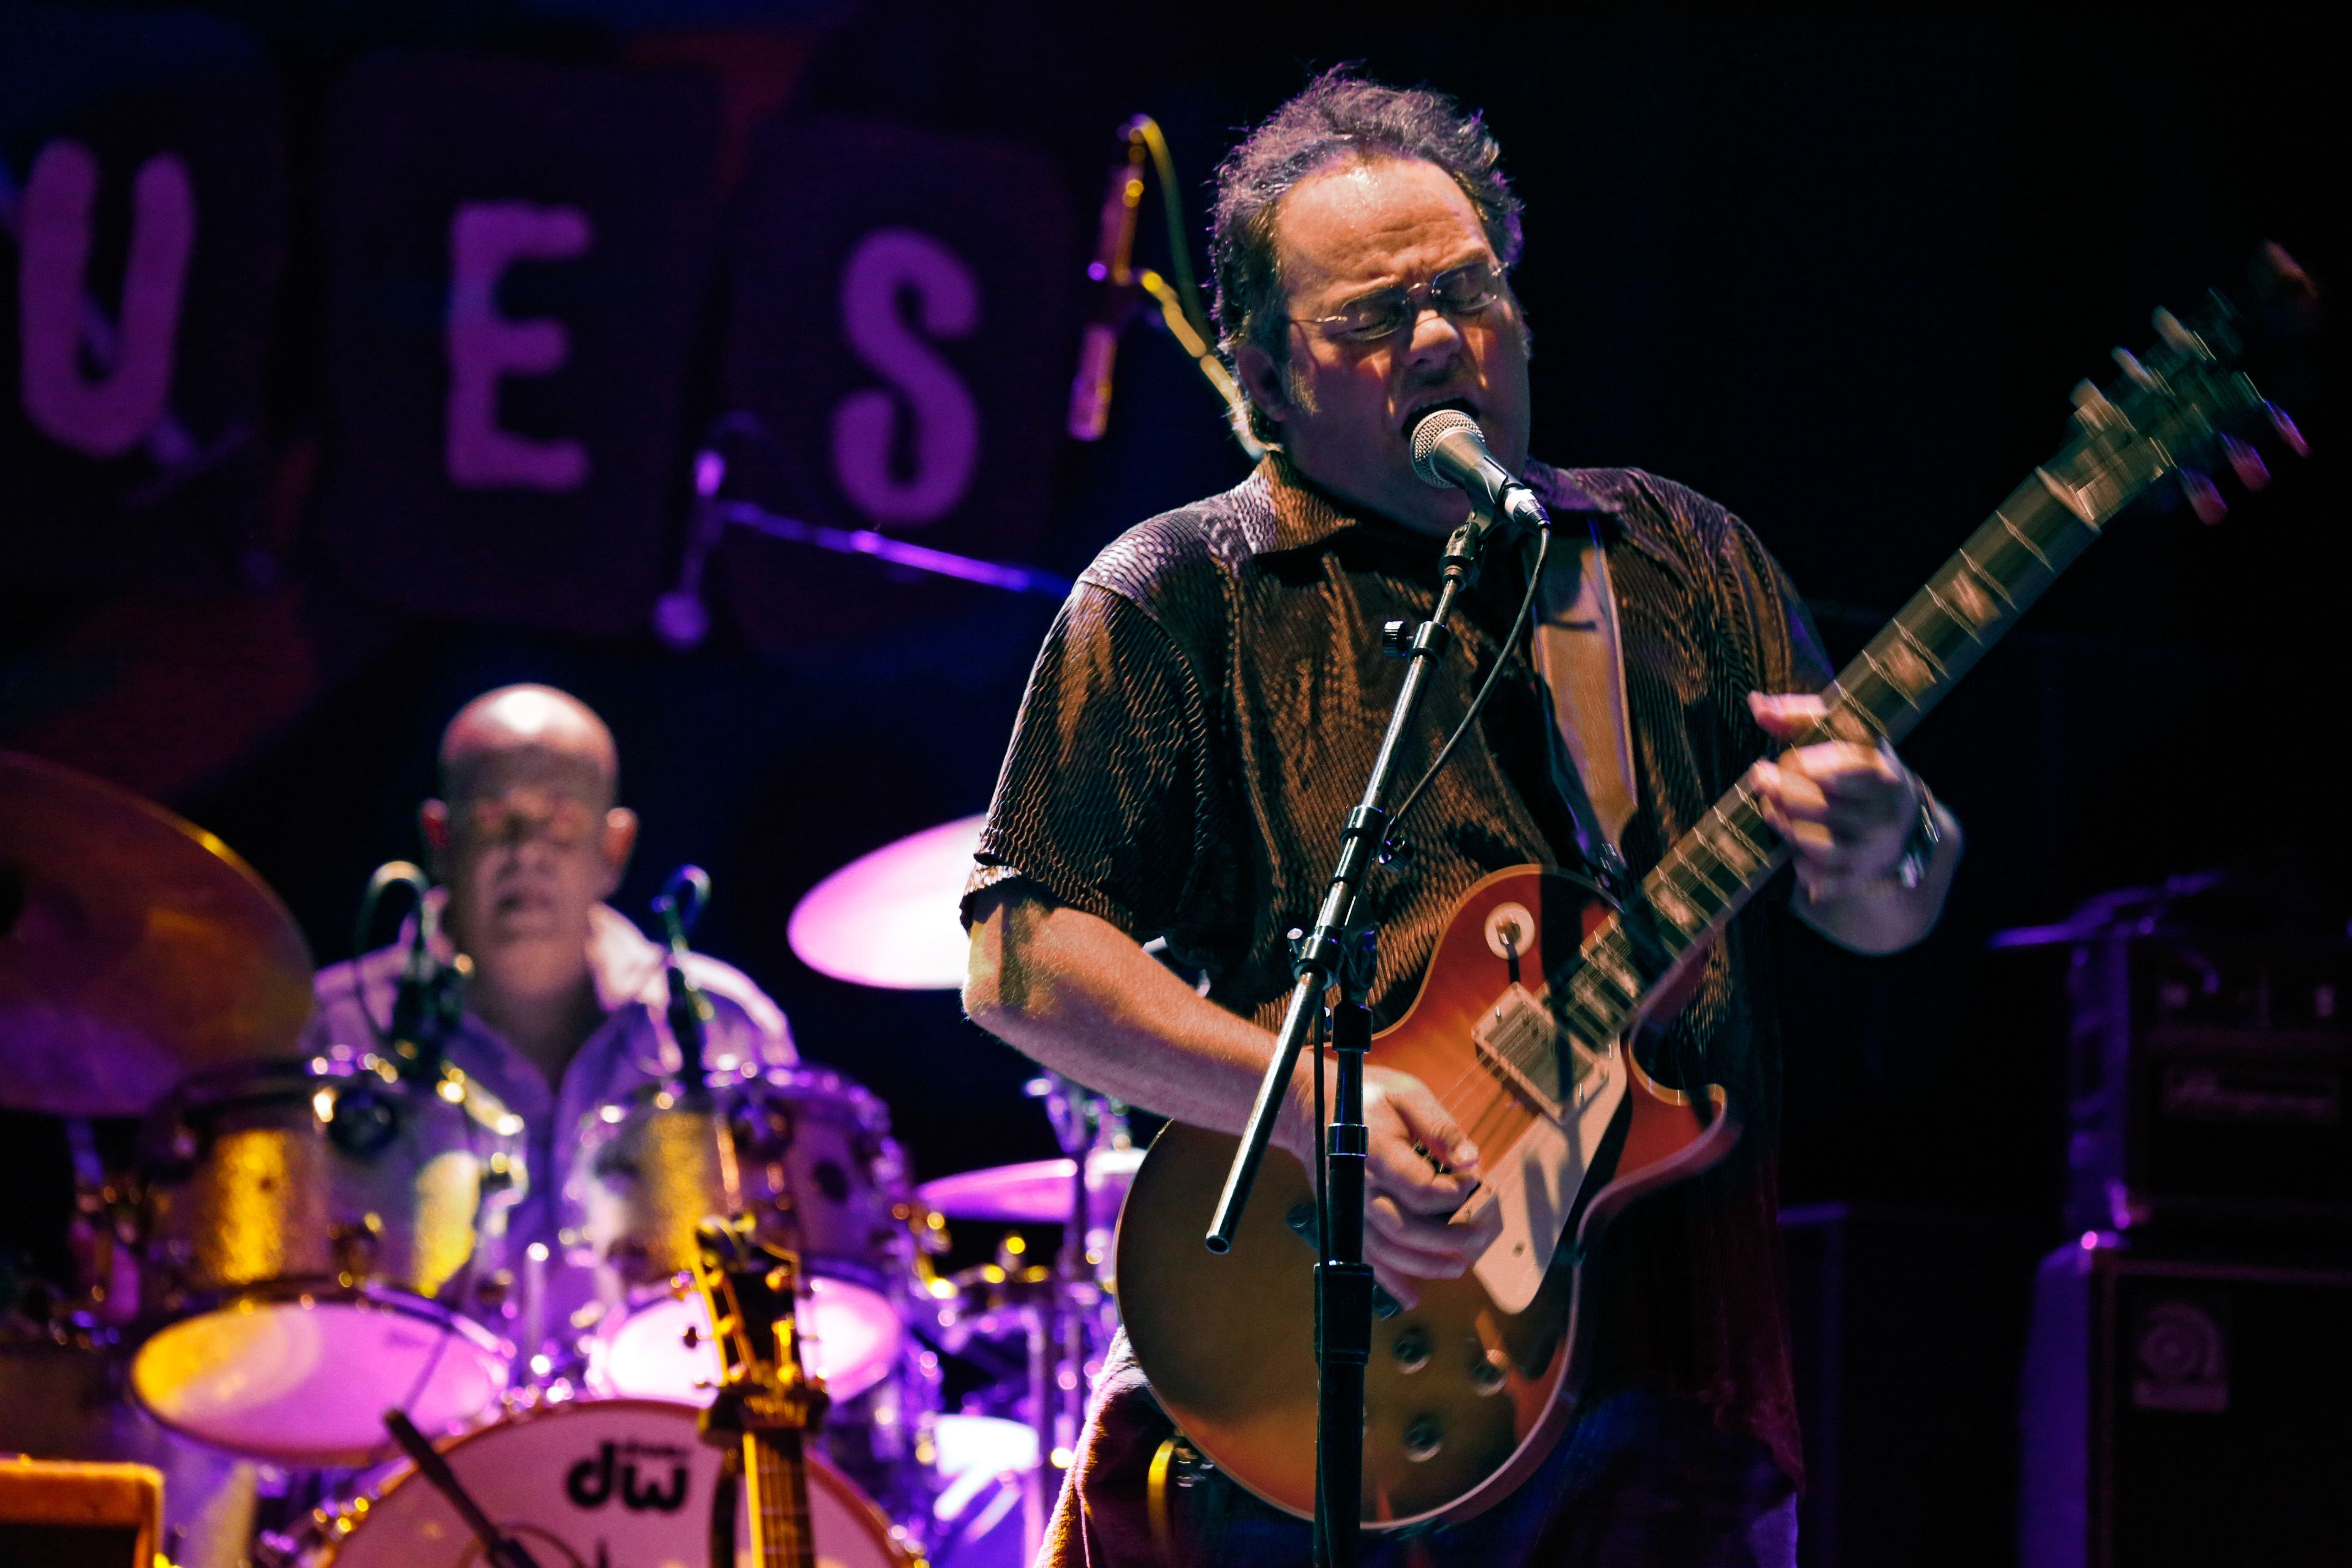 Dave Widow and the Line Up performs at the House of Blues in Anahiem, California —September 2014.